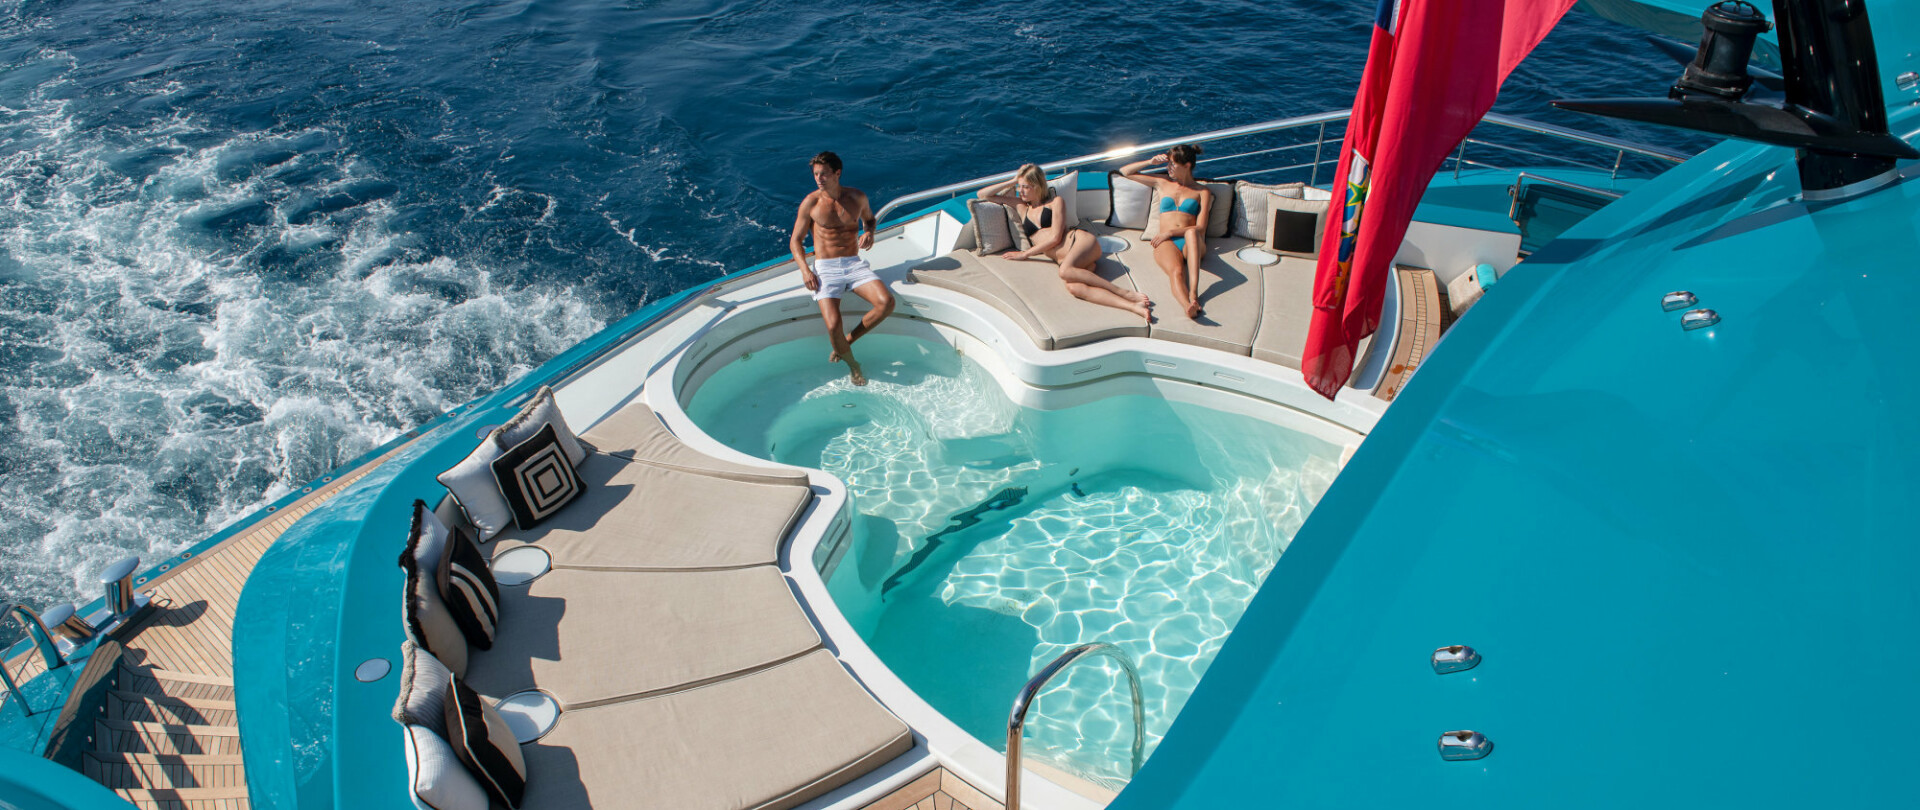 Enjoy the winter holidays on board a luxury yacht photo 1